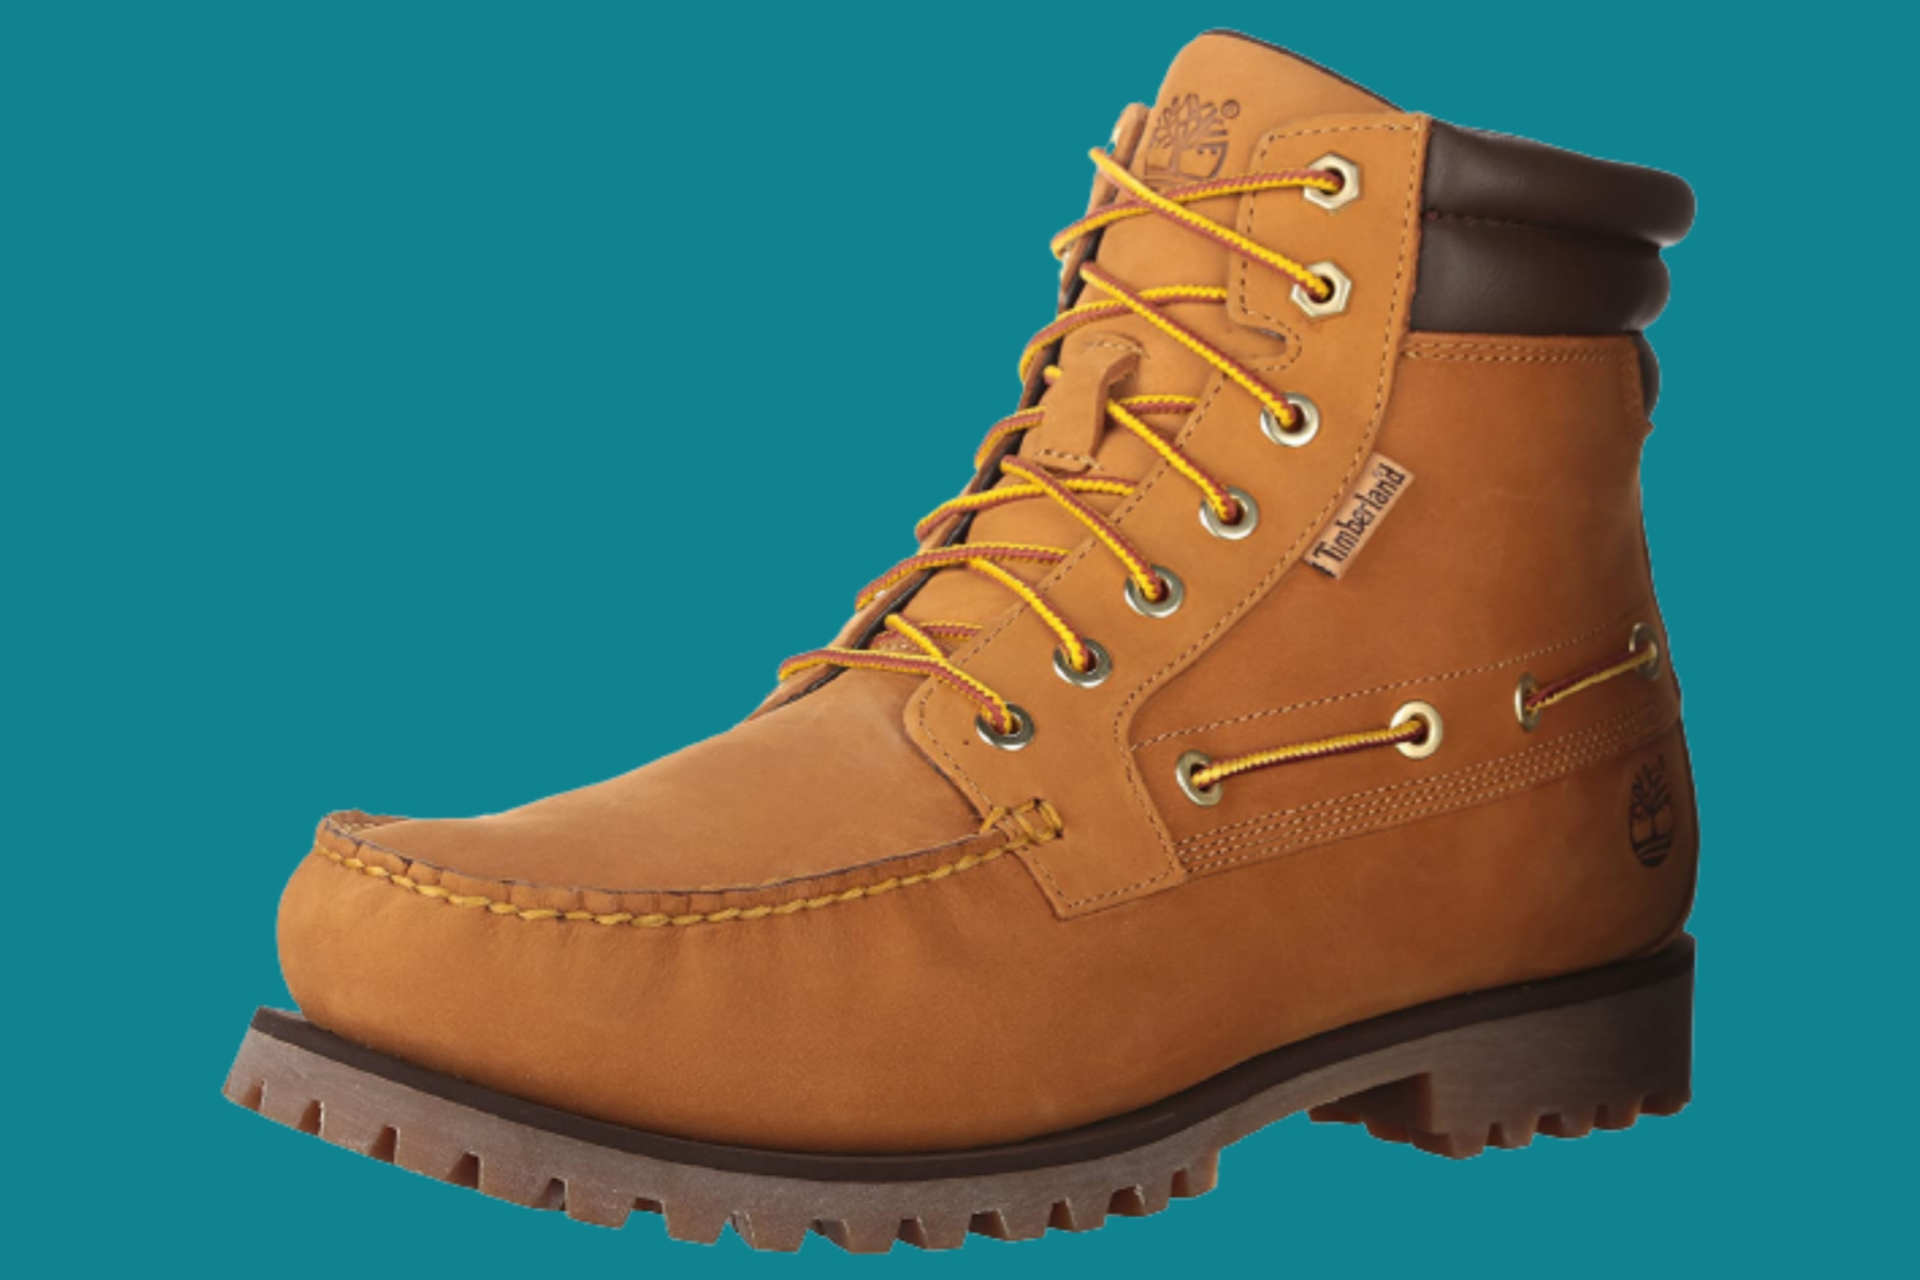 Comfy Timberland boots for hikers